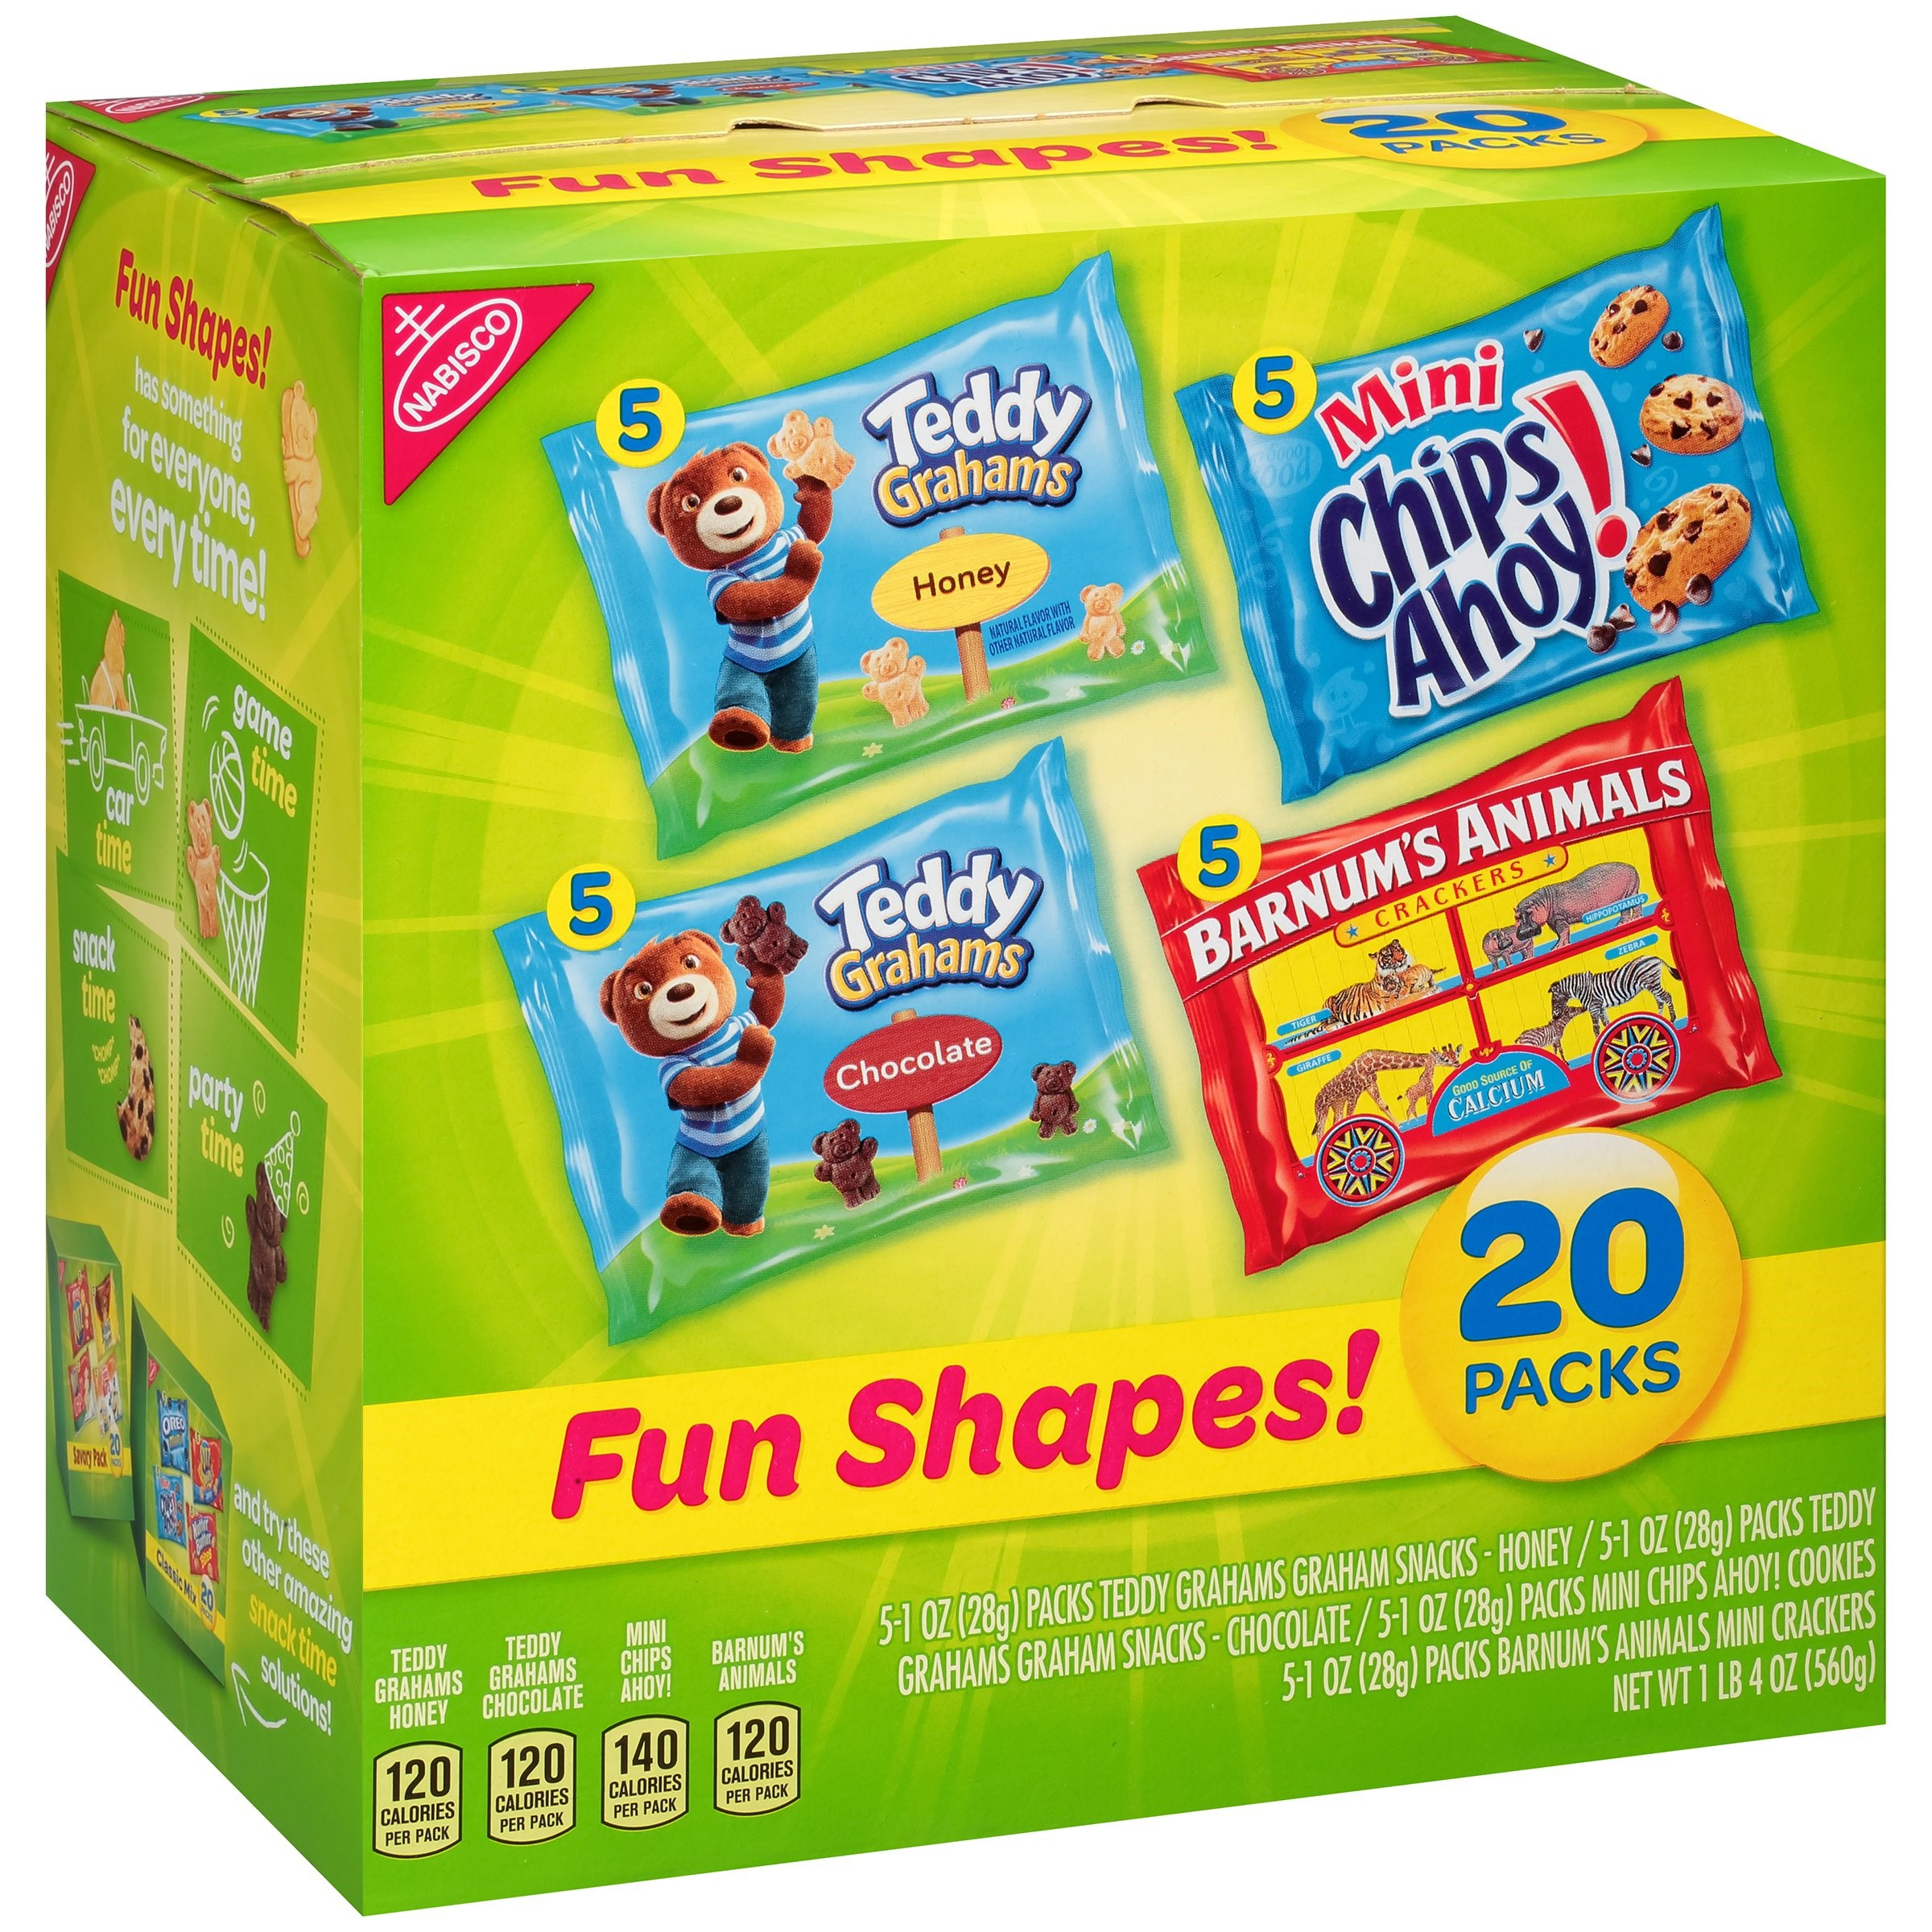 Nabisco Variety Pack Cookies & Crackers, Fun Shapes, 1 Oz, 20 Count